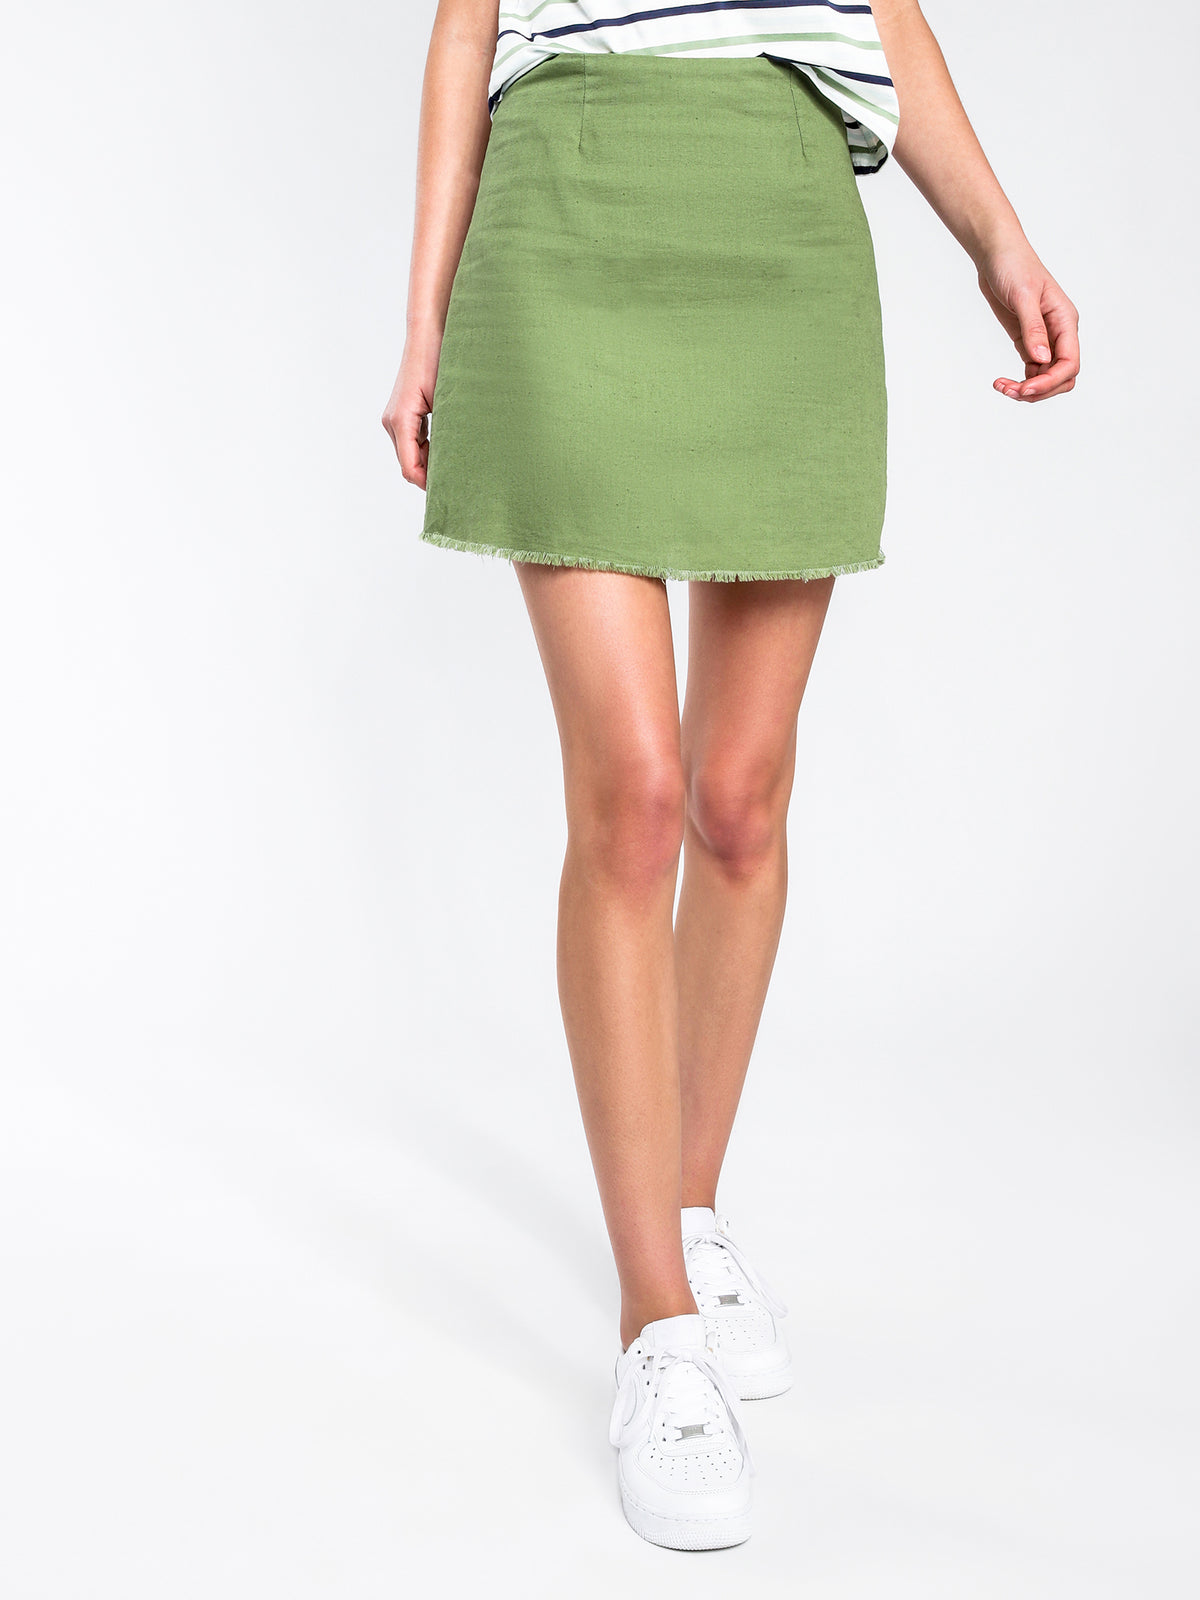 Flynn Skirt in Khaki